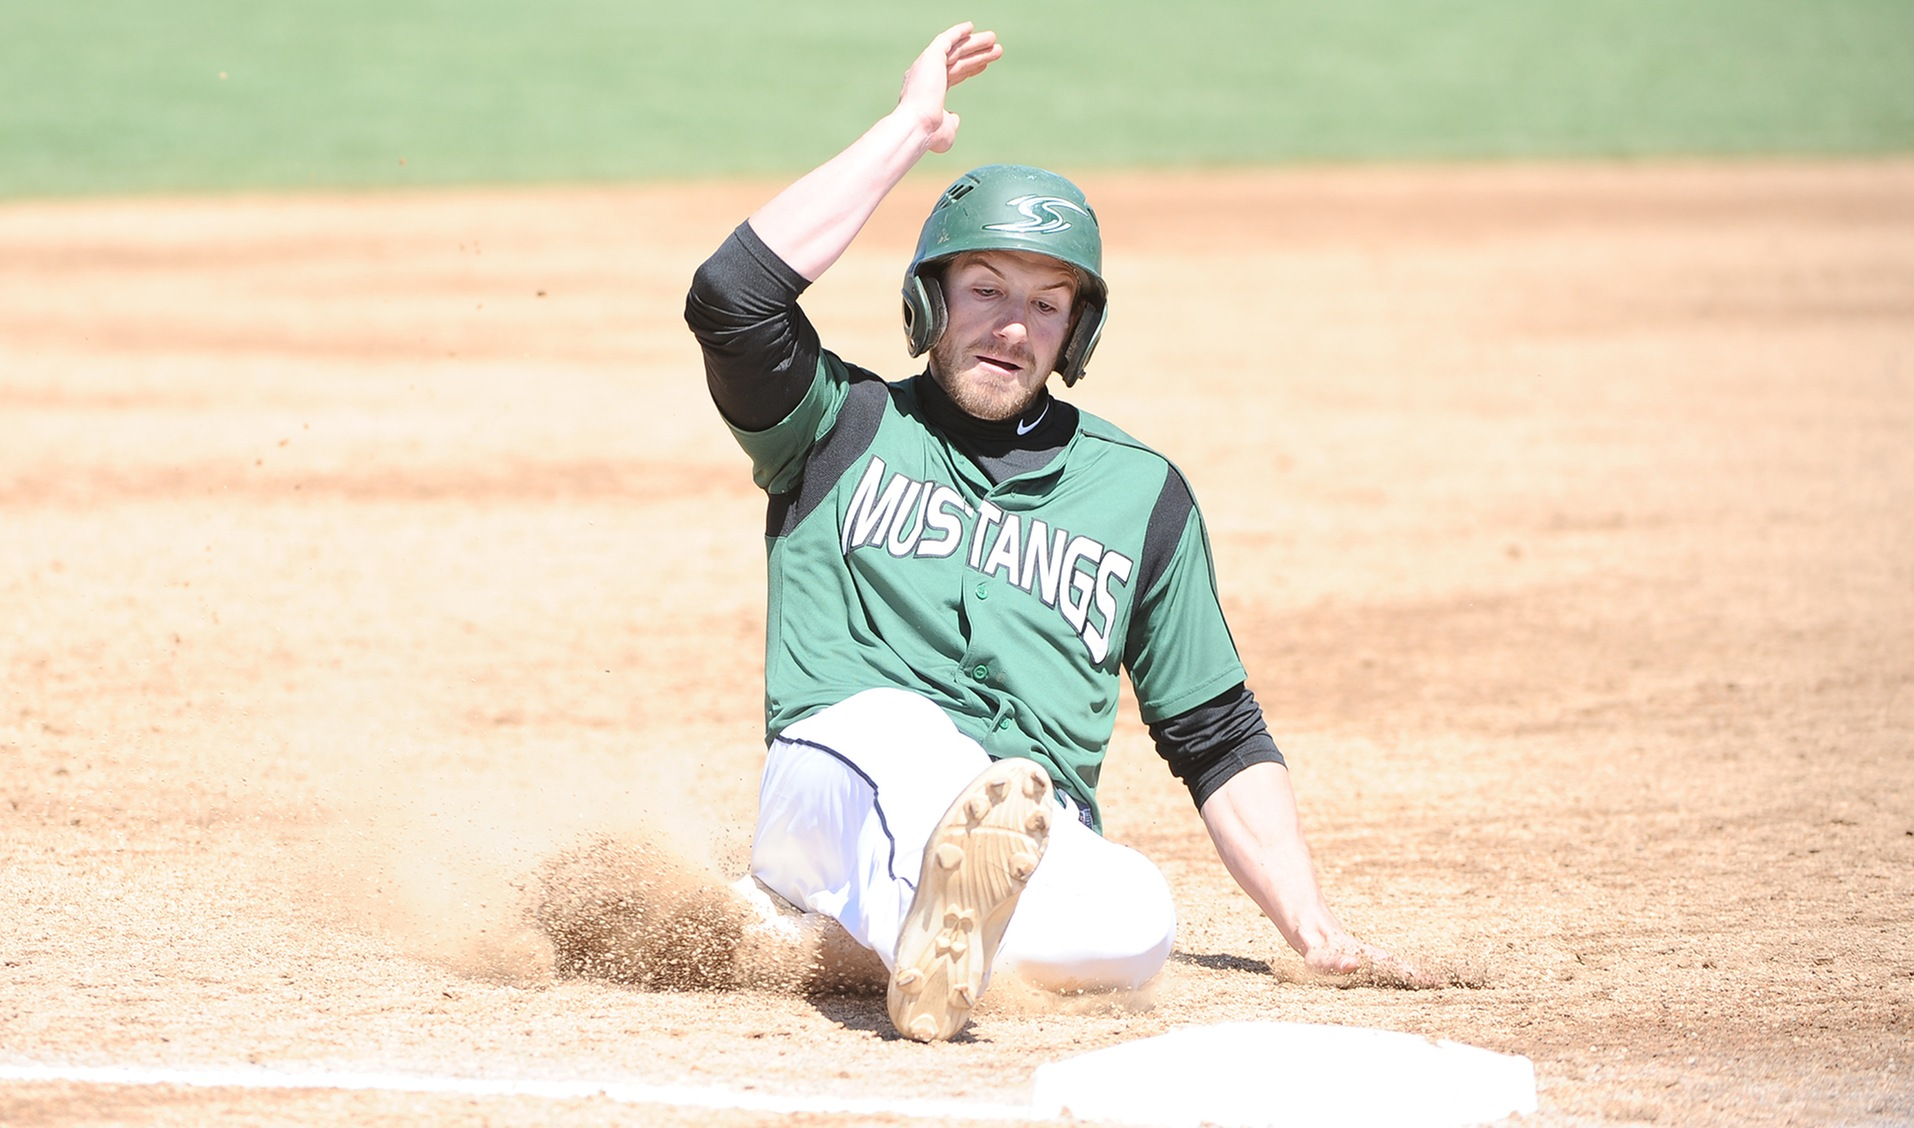 Baseball Completes Season Sweep of Catholic